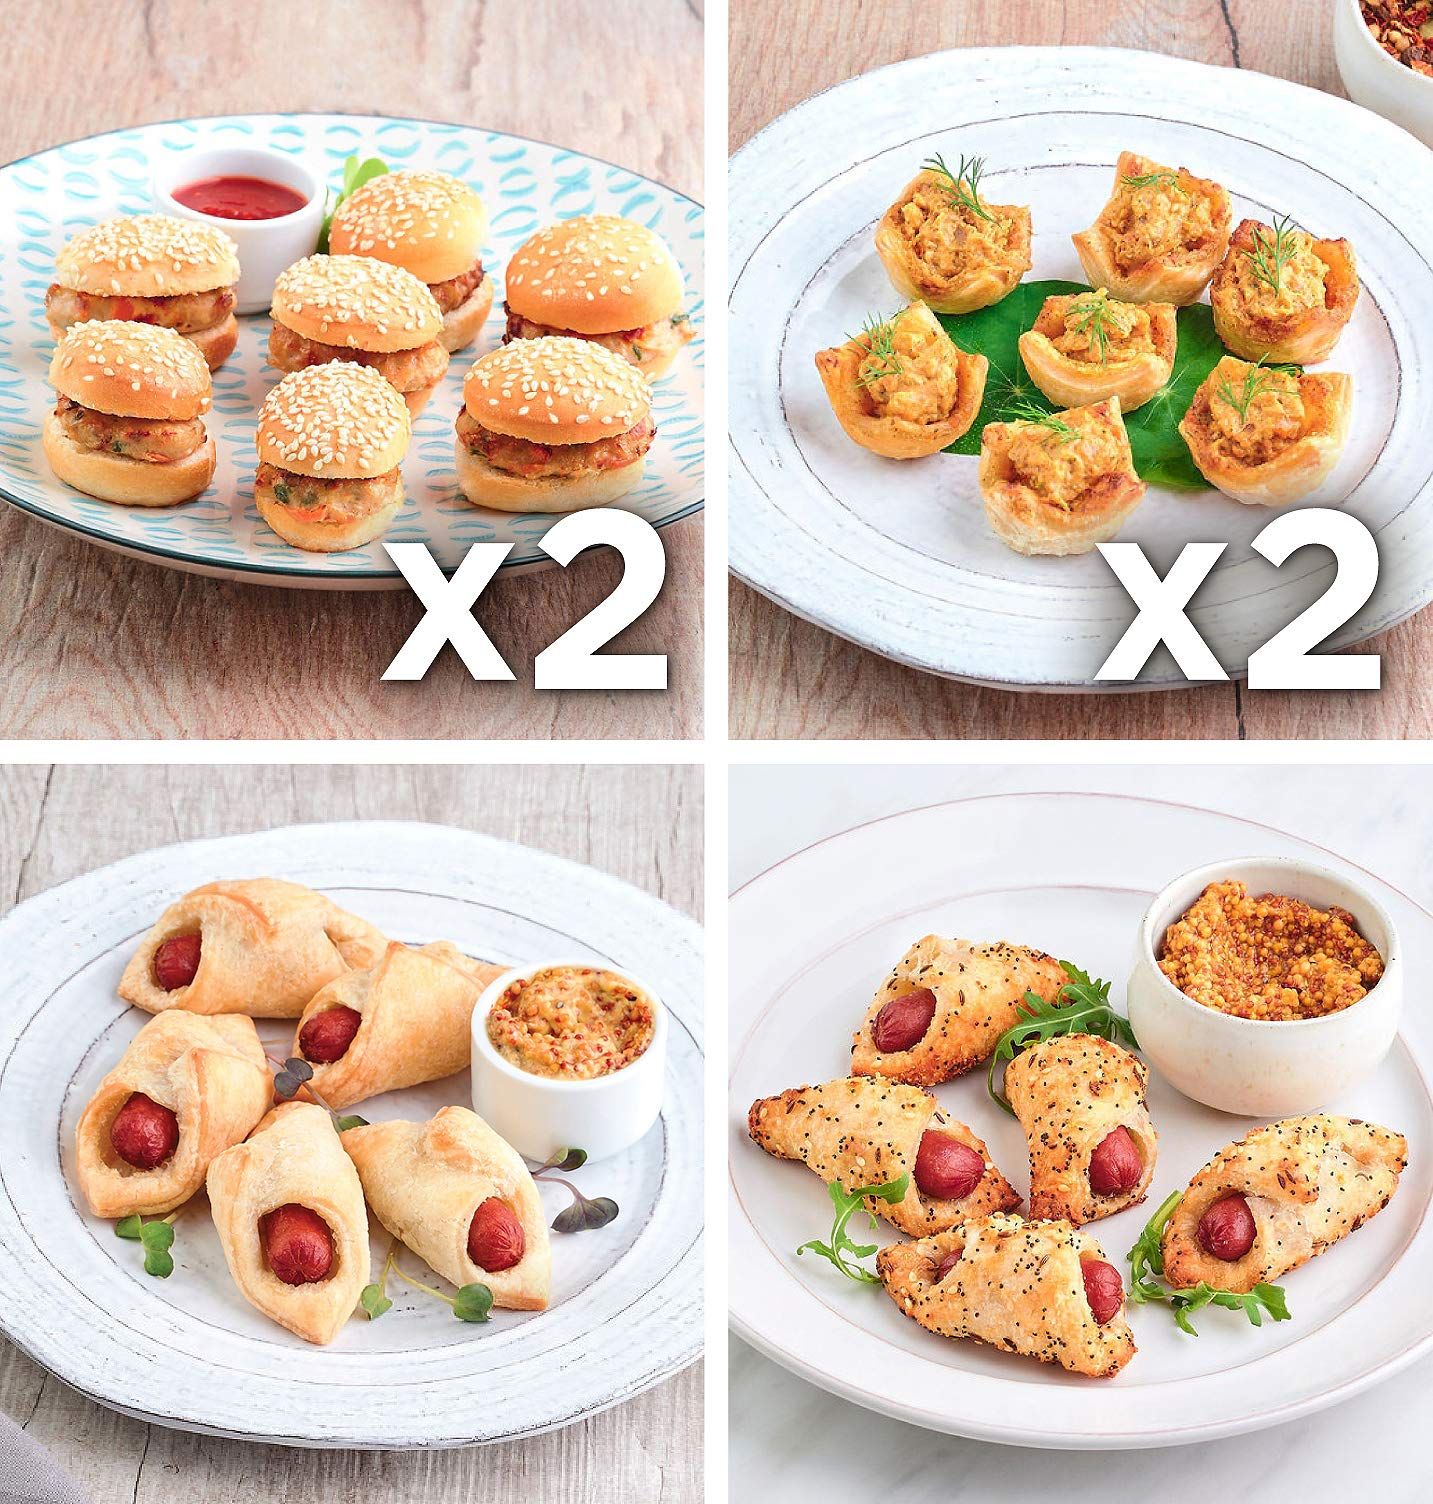 Babeth's Feast Hearty Appetizers Sampler - 6 pack of 4 Different Hearty Appetizers/Heat and Serve/No Preservatives